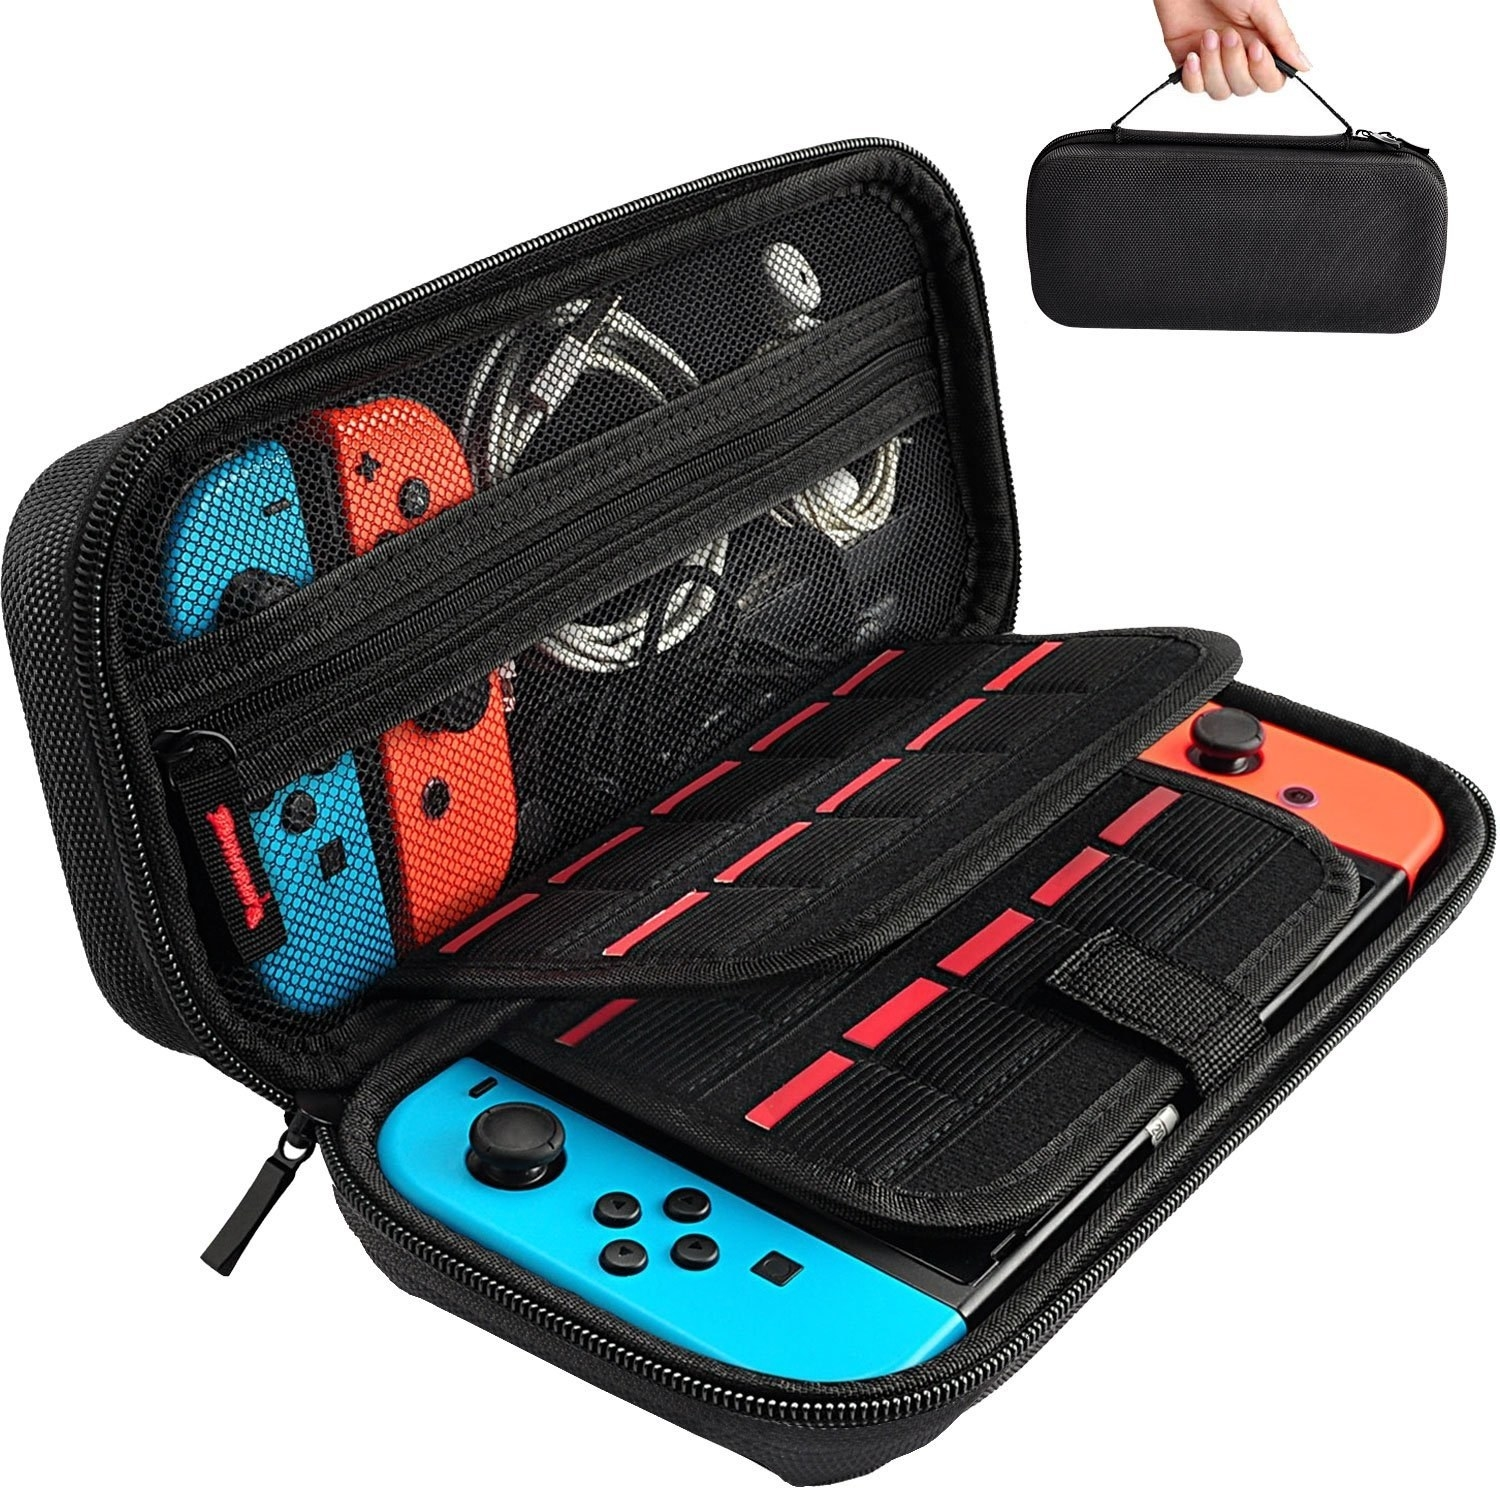 A handheld case that neatly packs a standard Switch, an extra set of joycons, cables, headphones, and game cartridges